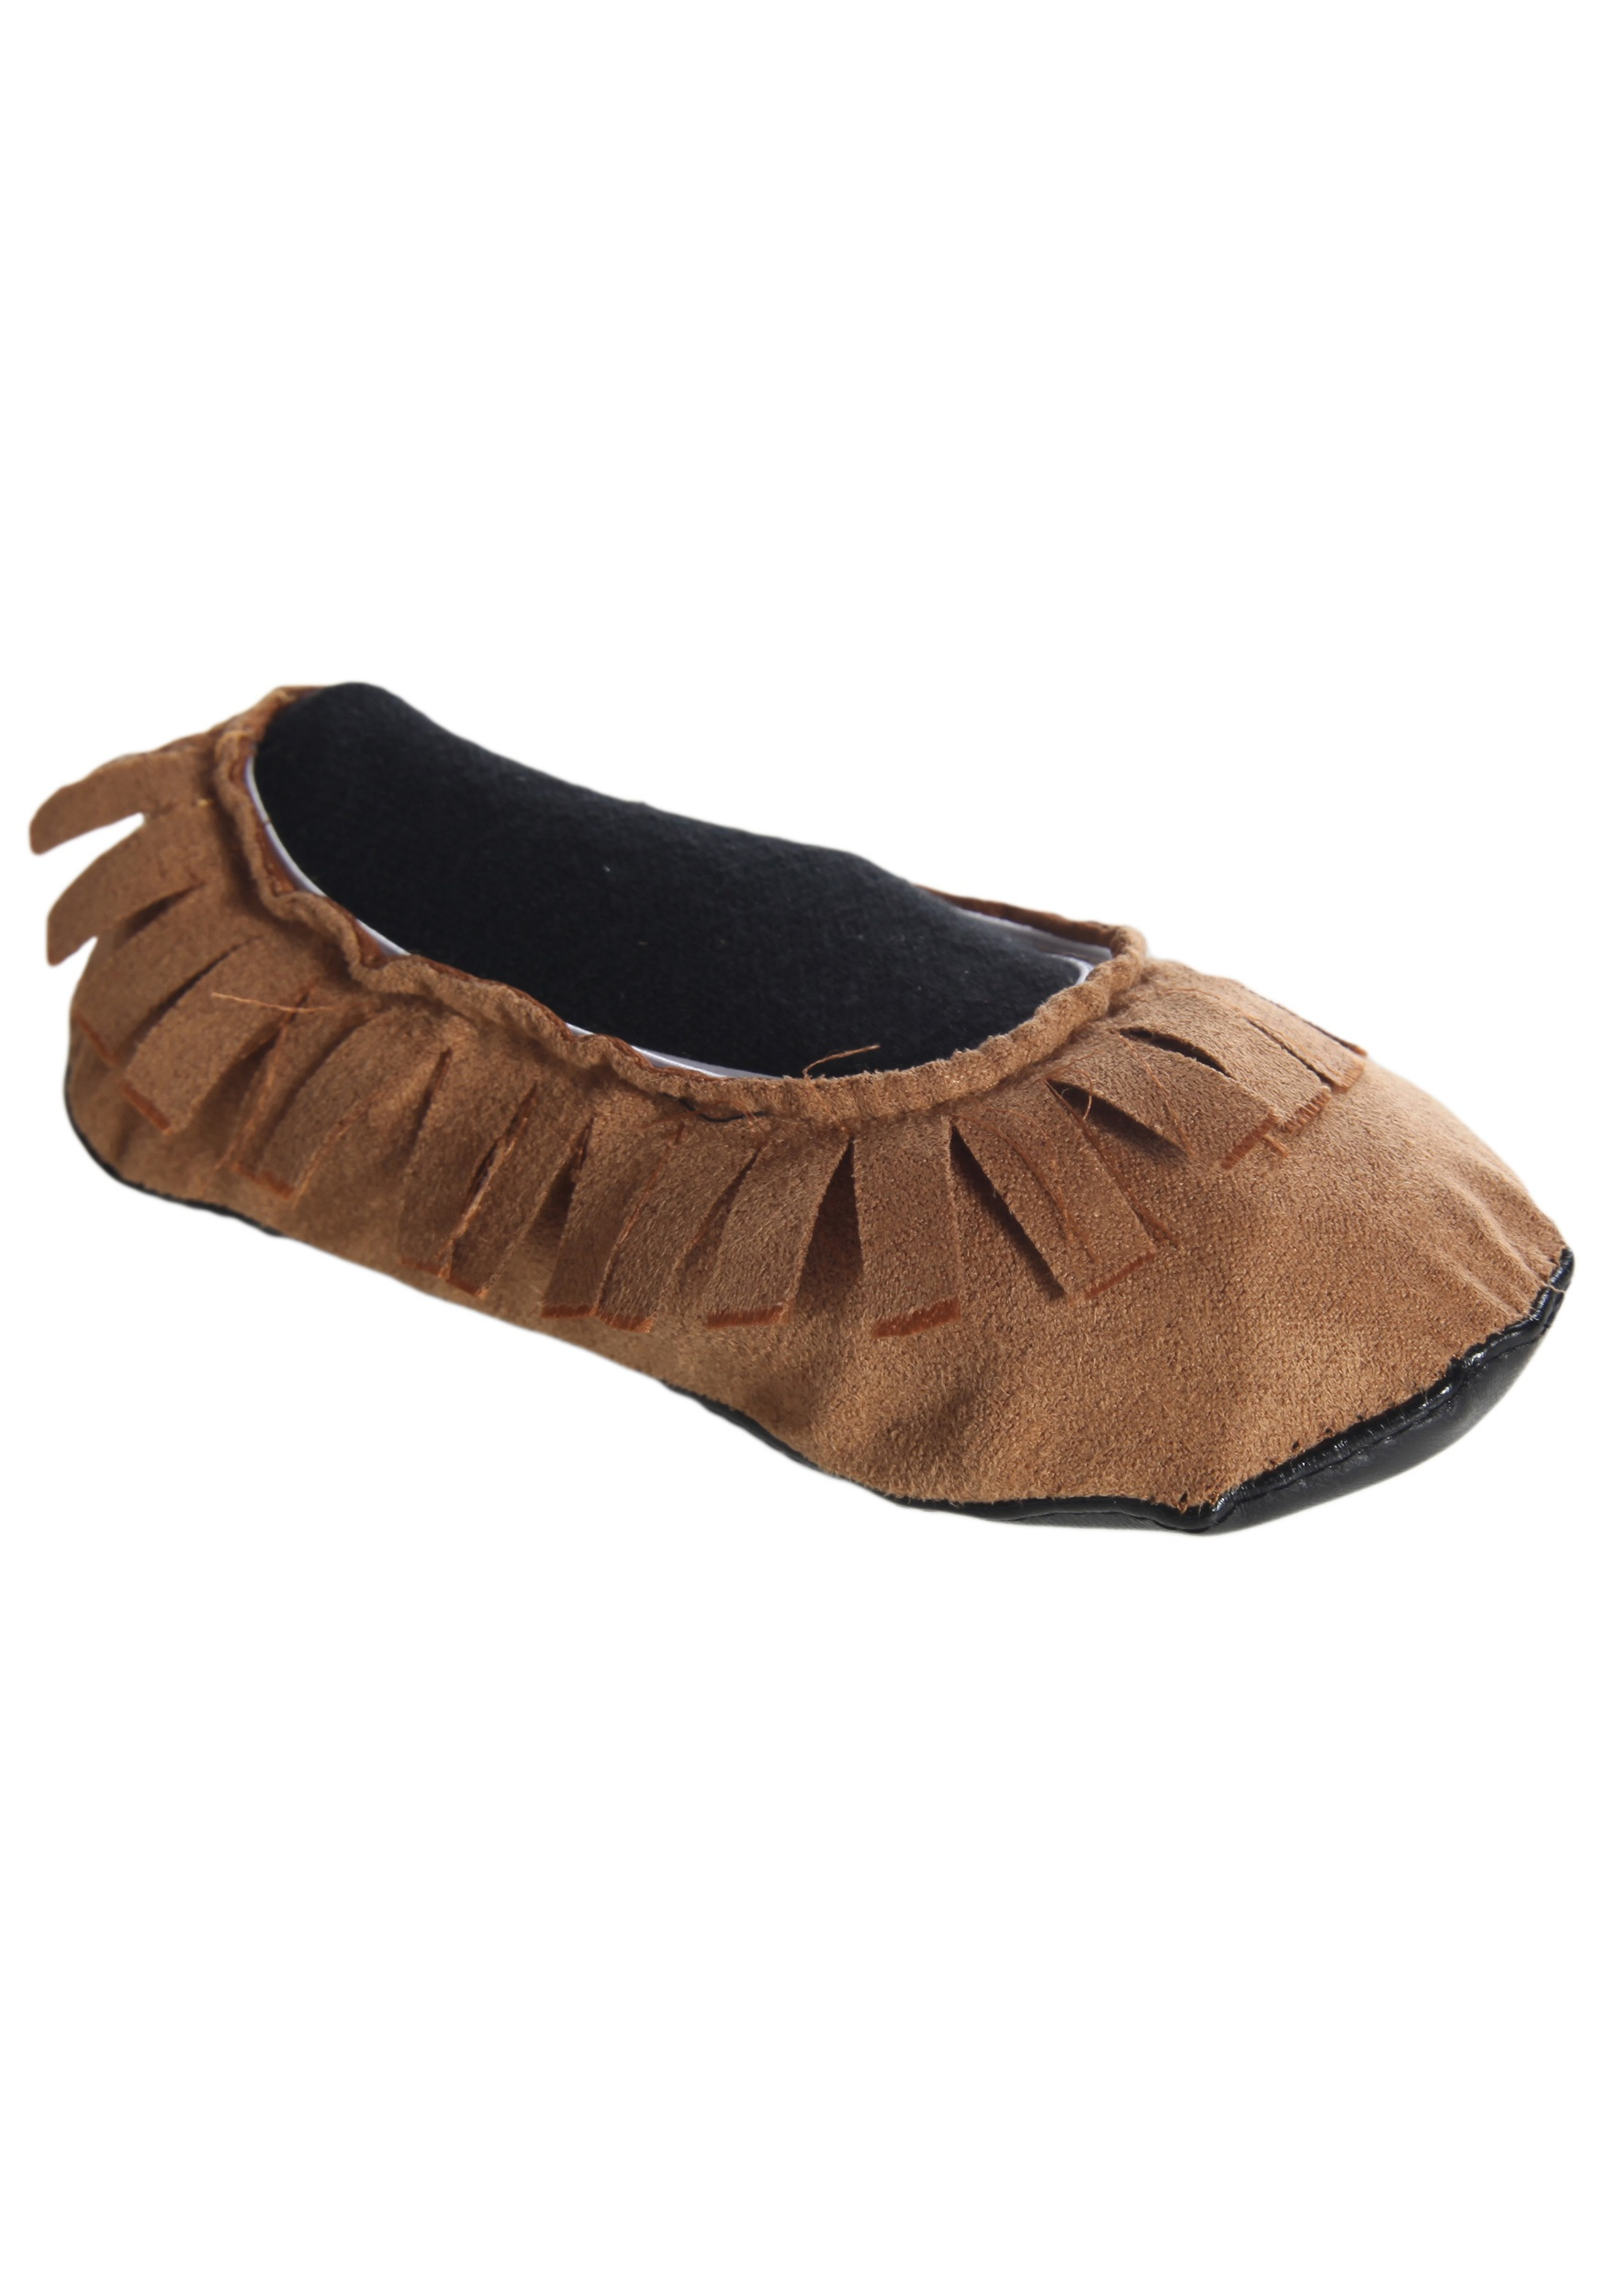 Kids Indian Moccasins